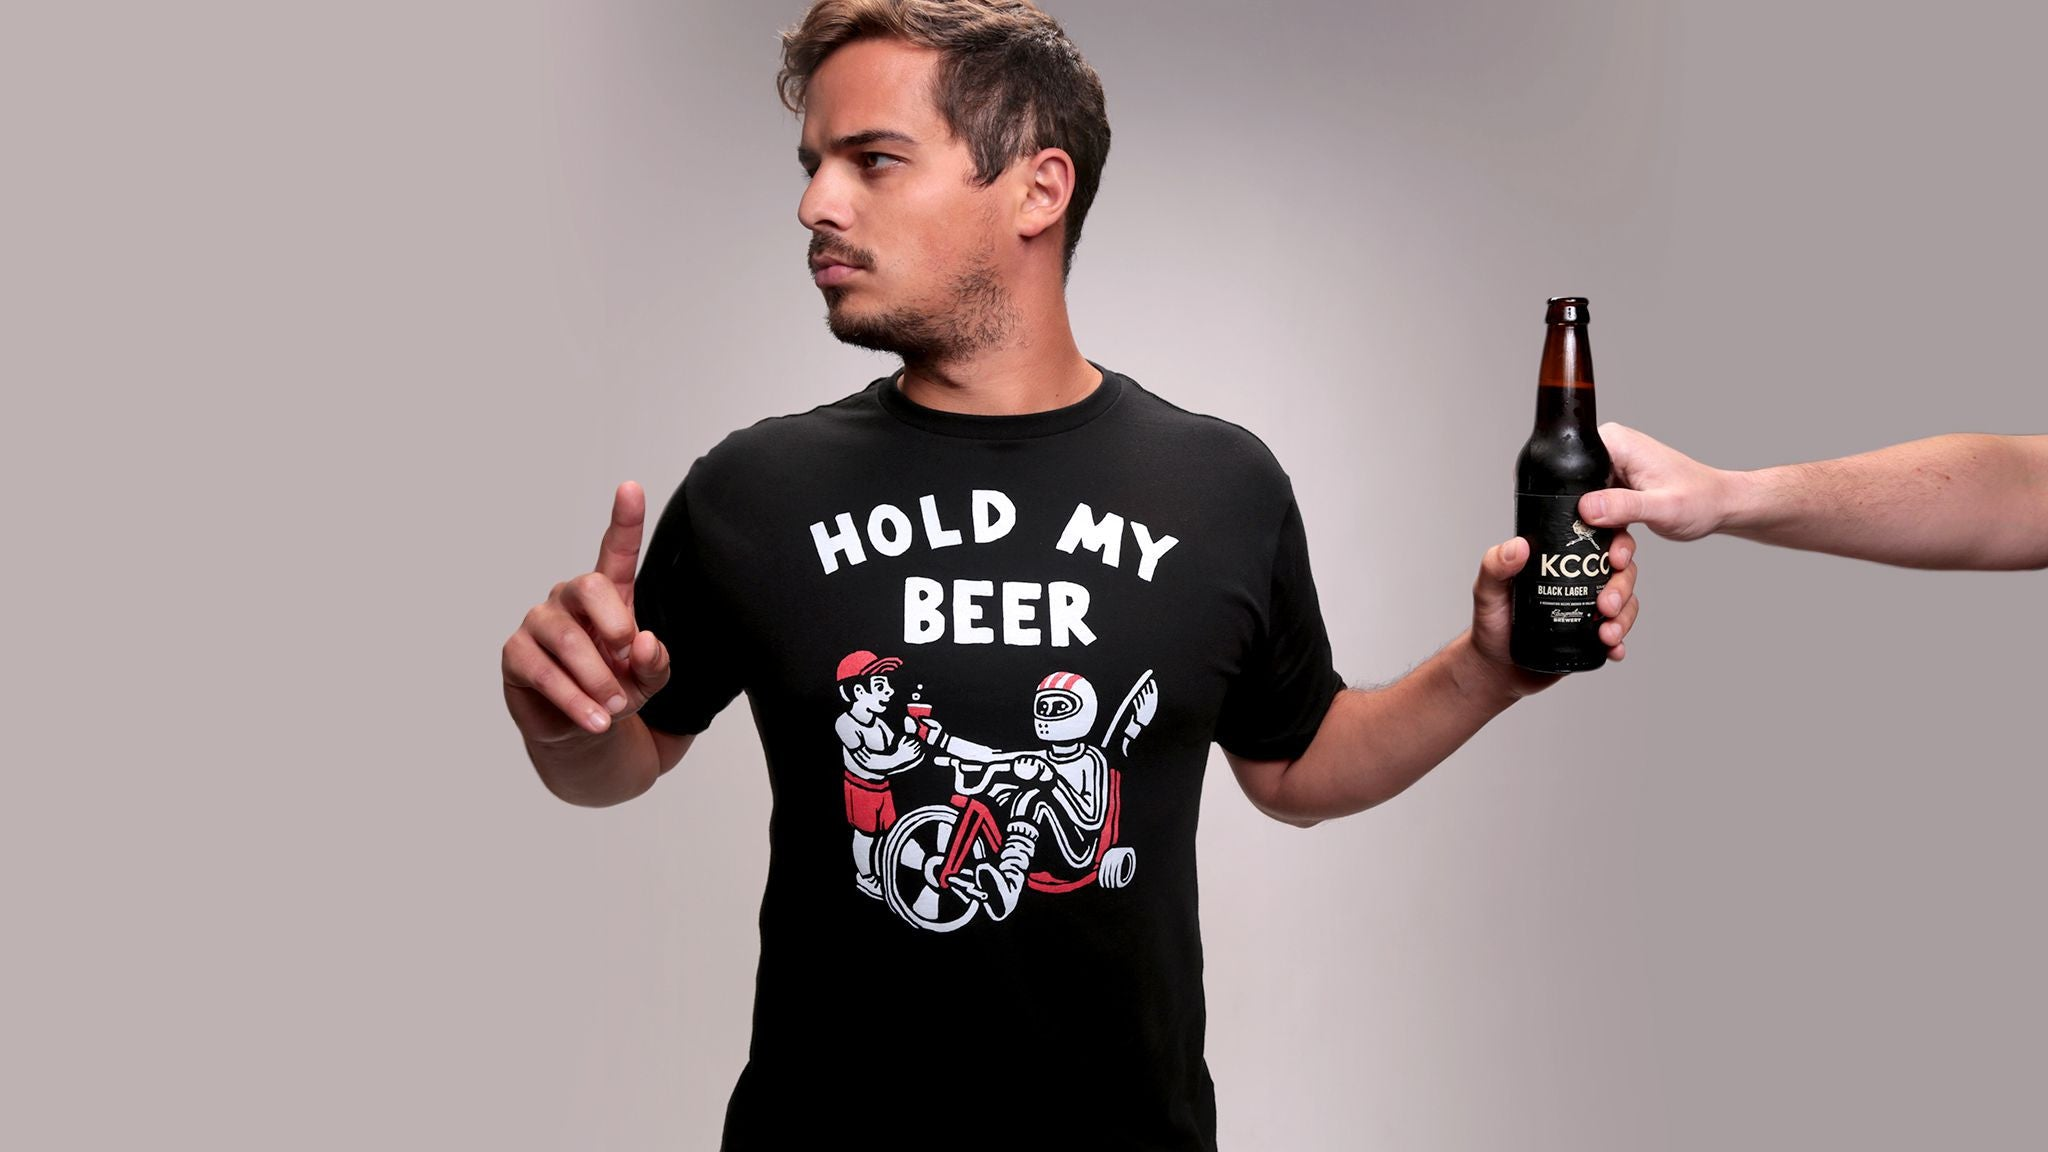 Men's Hold My Beer Tee - Black - The Chivery